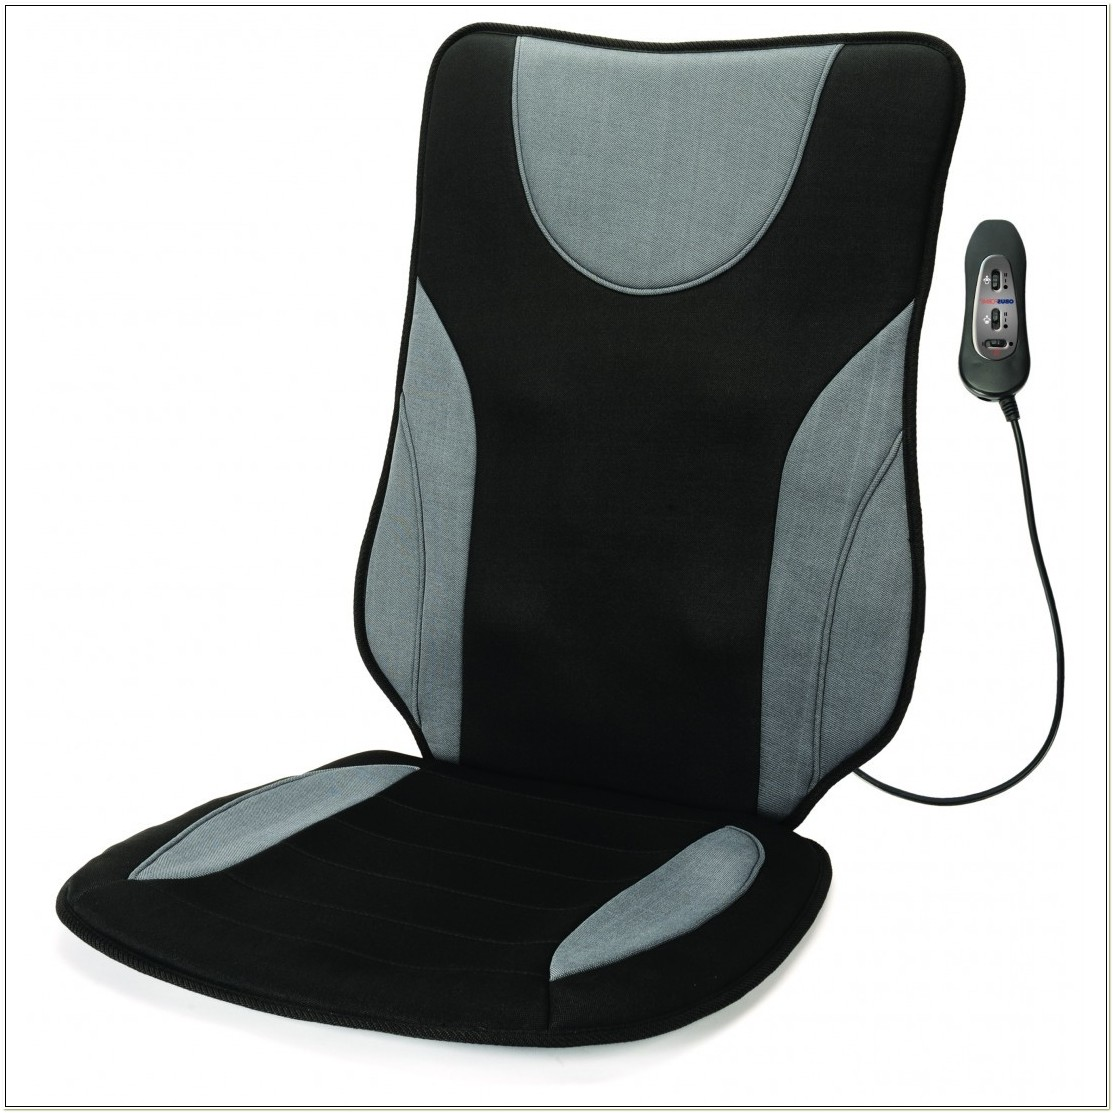 Obusforme By Homedics Massage Chair Cushion